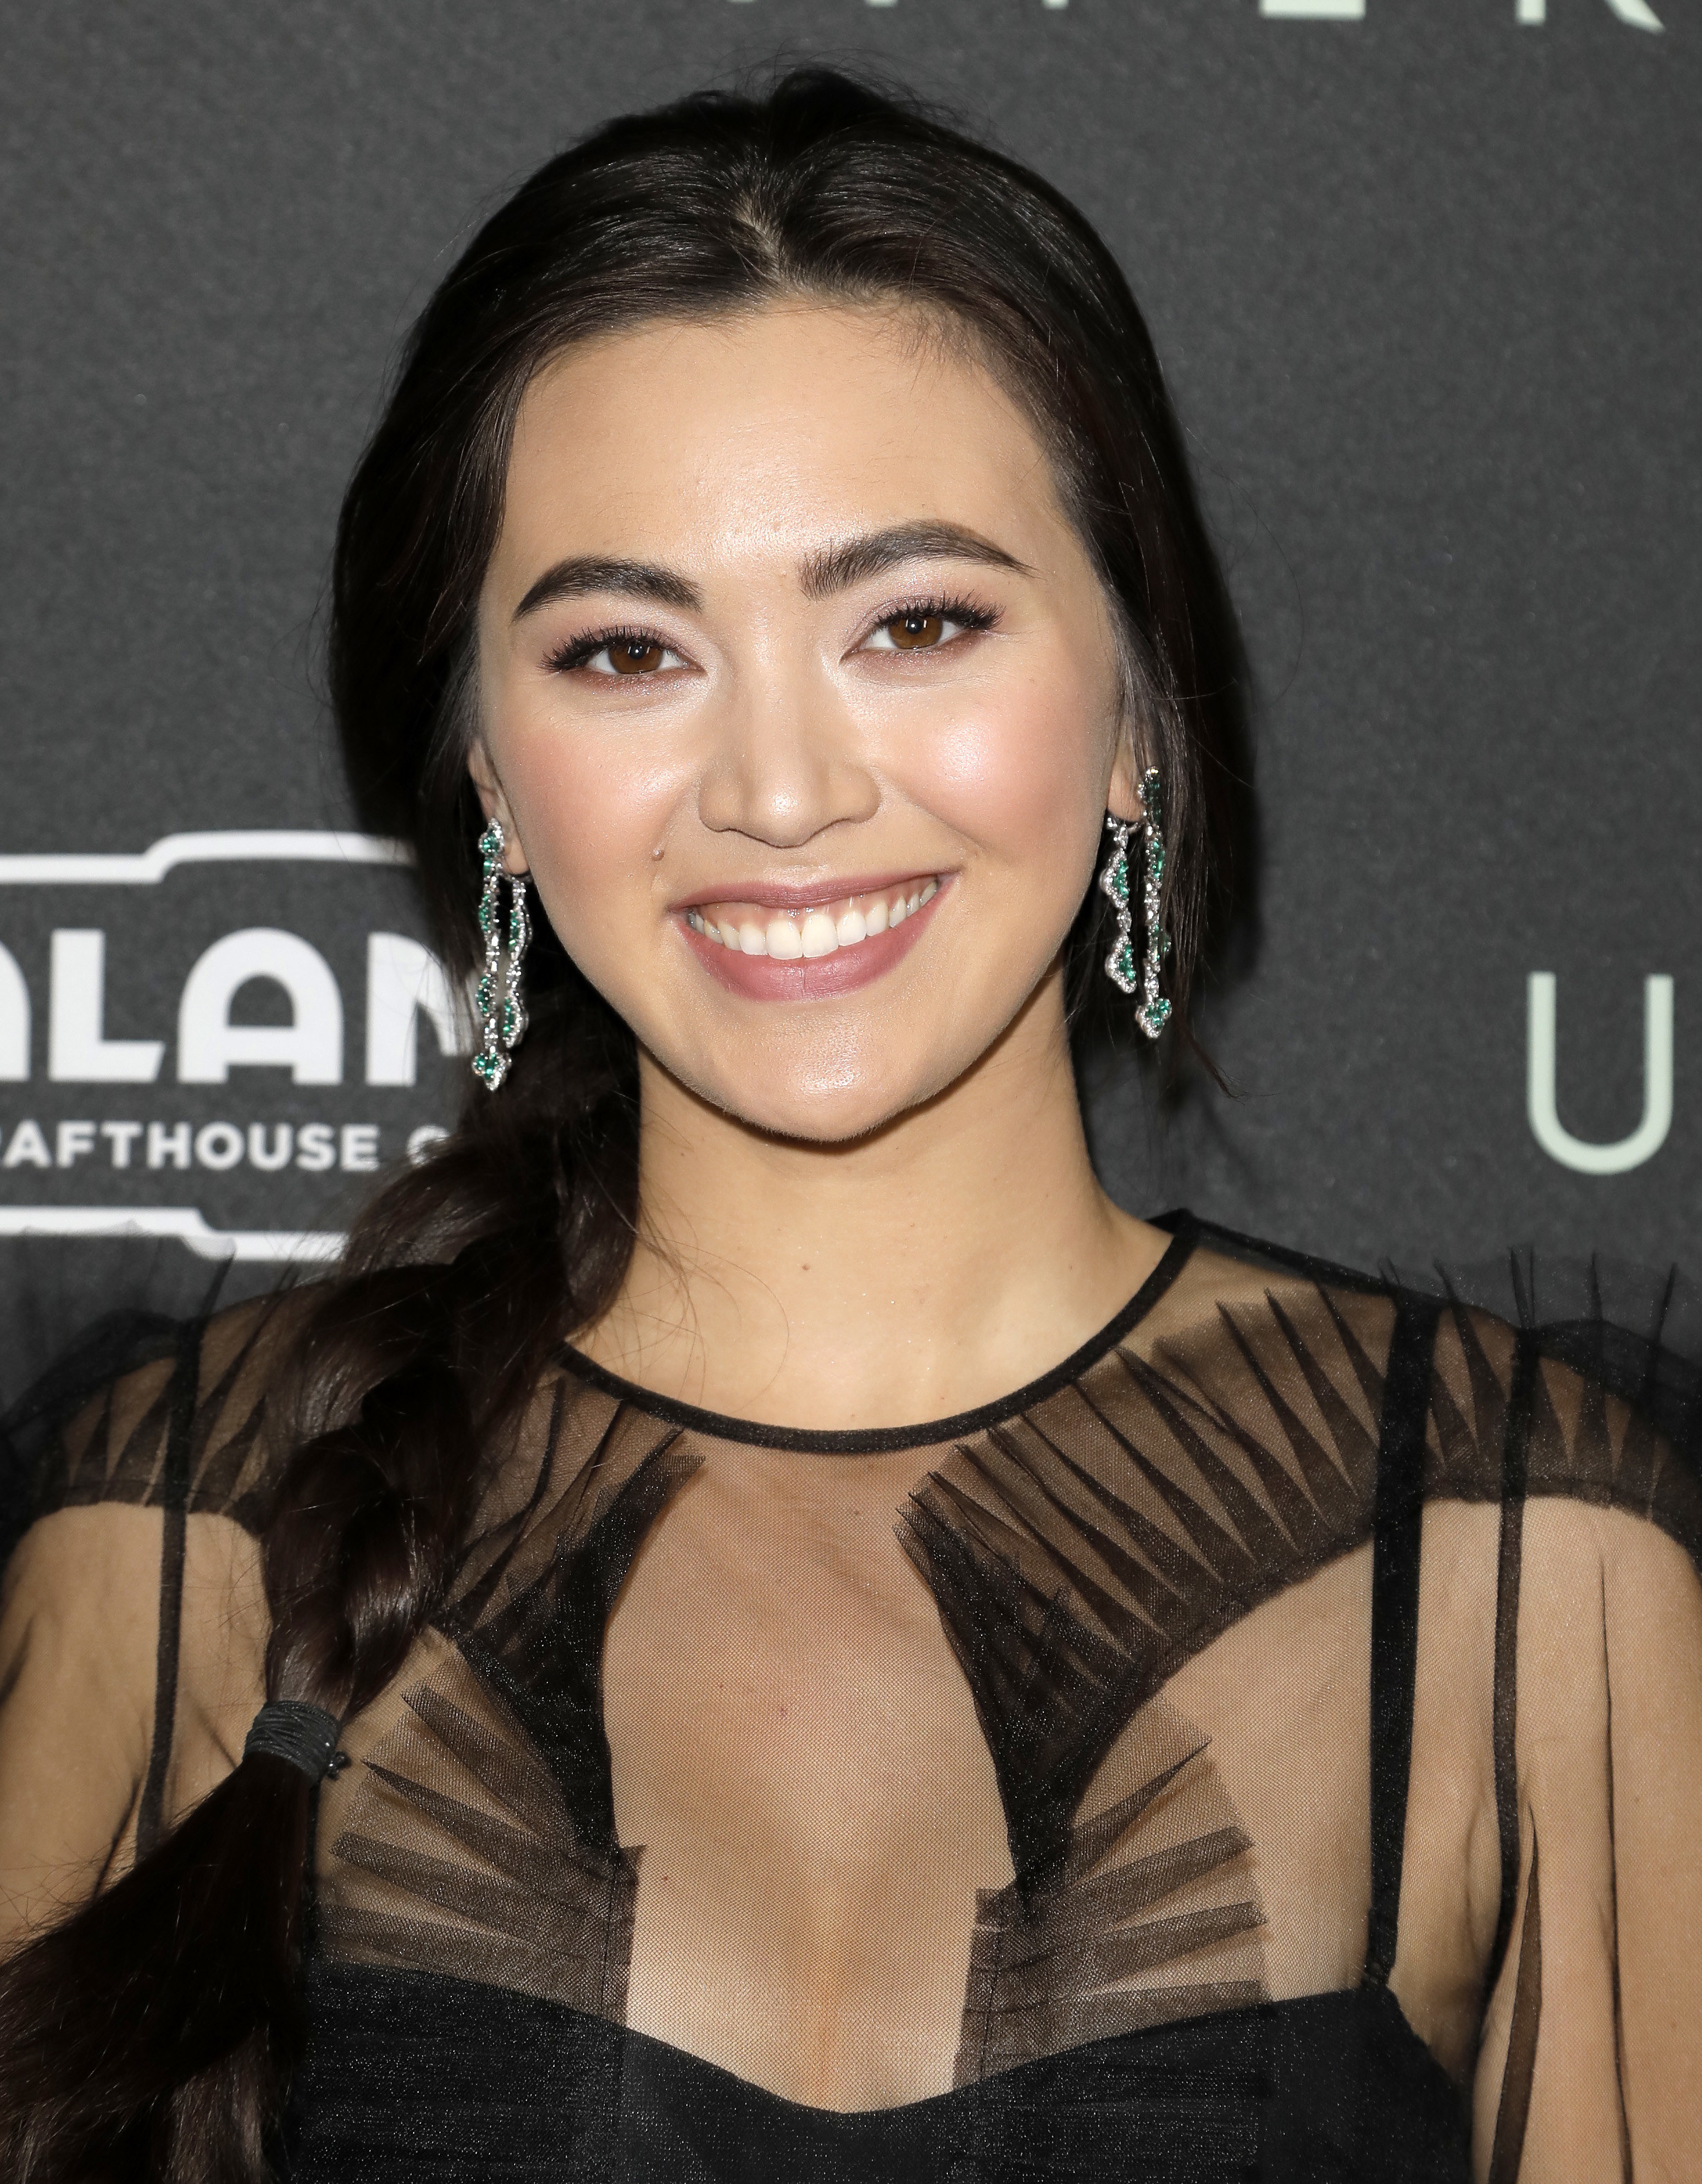 Jessica Henwick smiles with her hair in a low ponytail, wearing a chiffon black dress